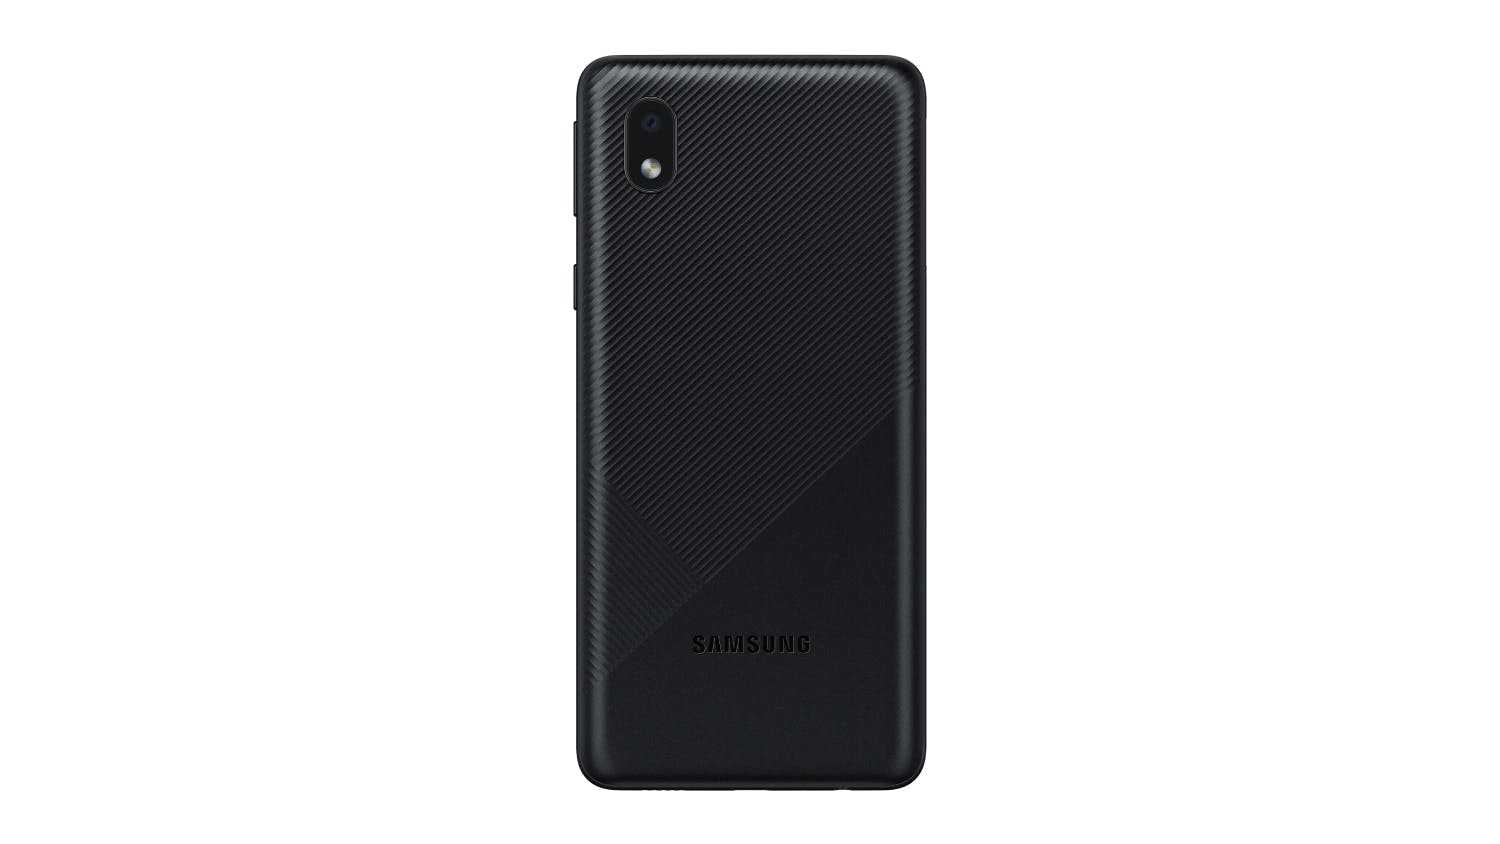 Vodafone Samsung Galaxy A01 Core + Prepay SIM Card - Black